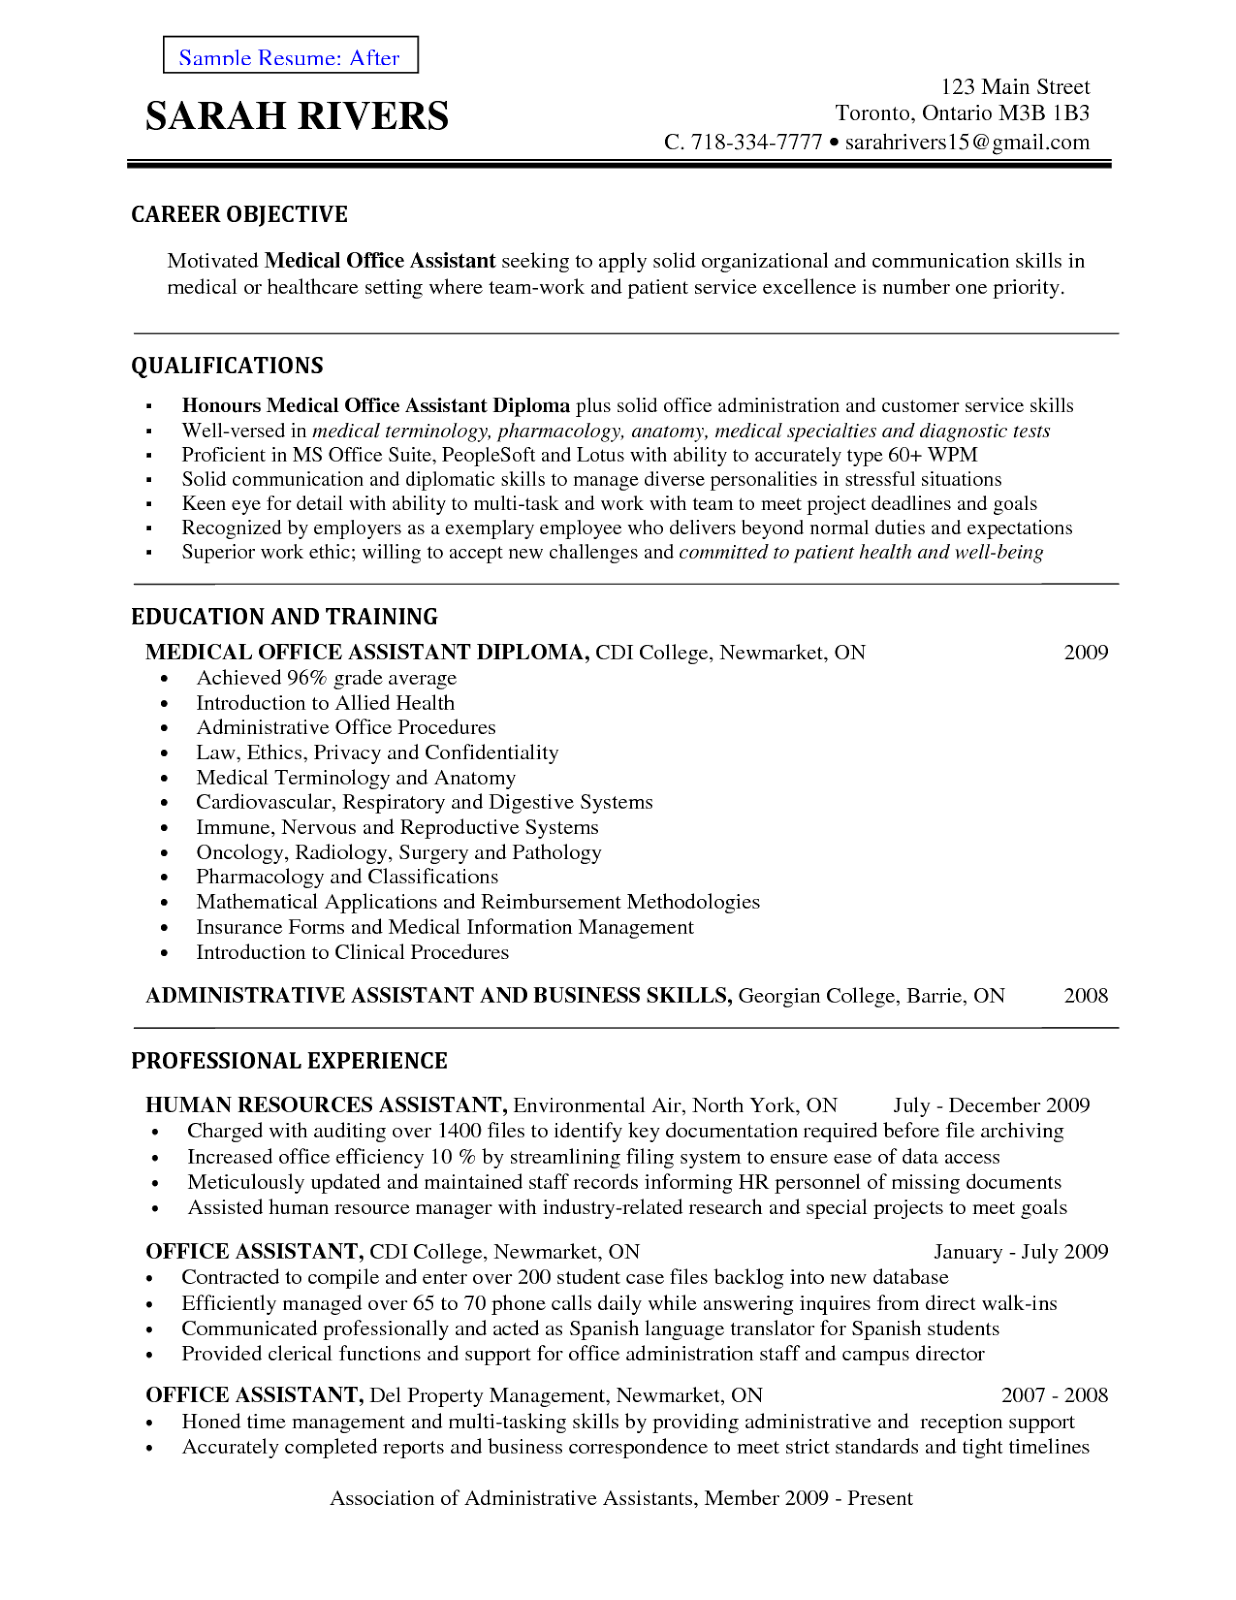 Objective Resume Examples Medical Assistant